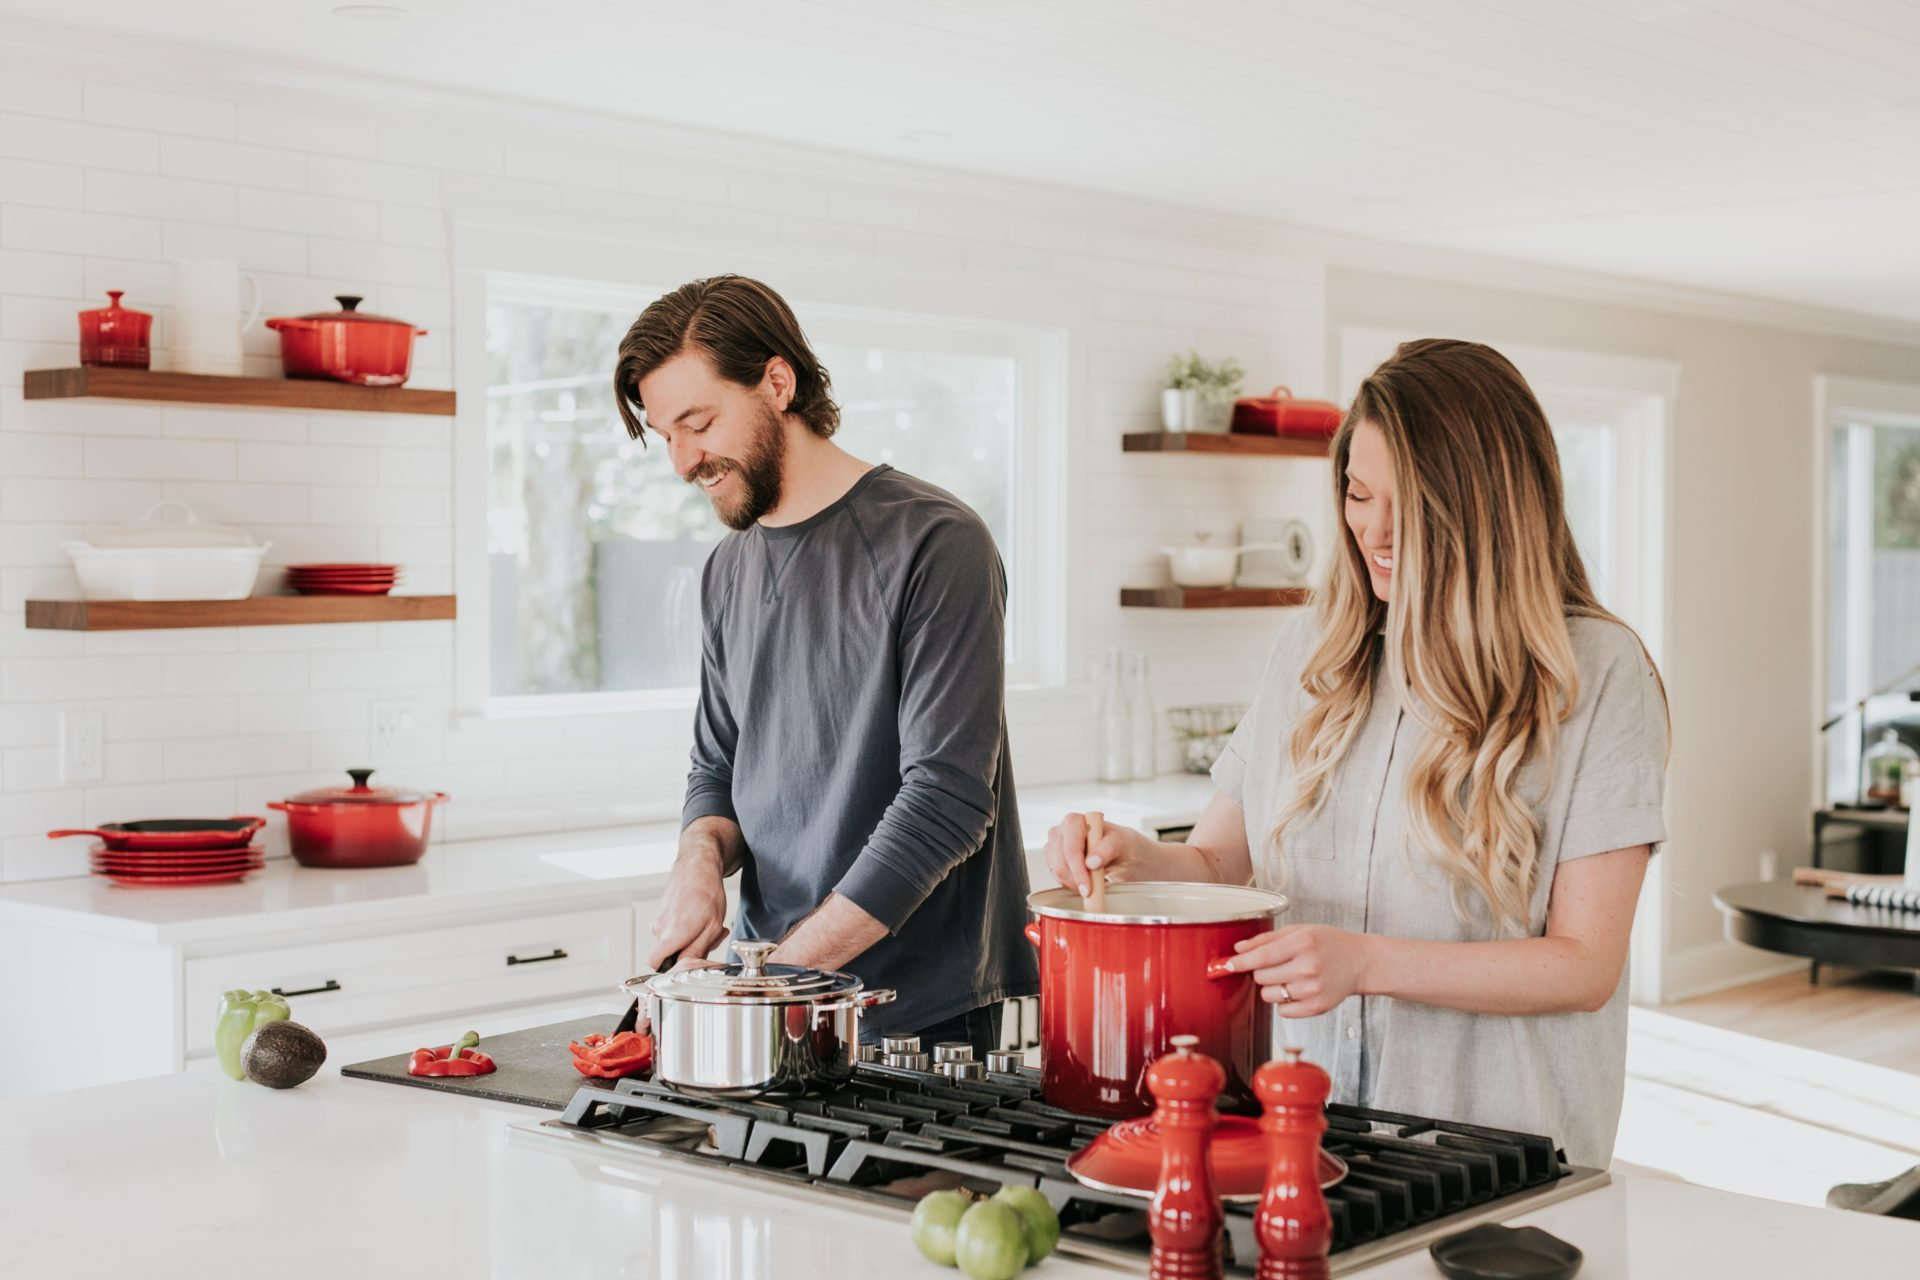 Young couple cooking in a kitchen